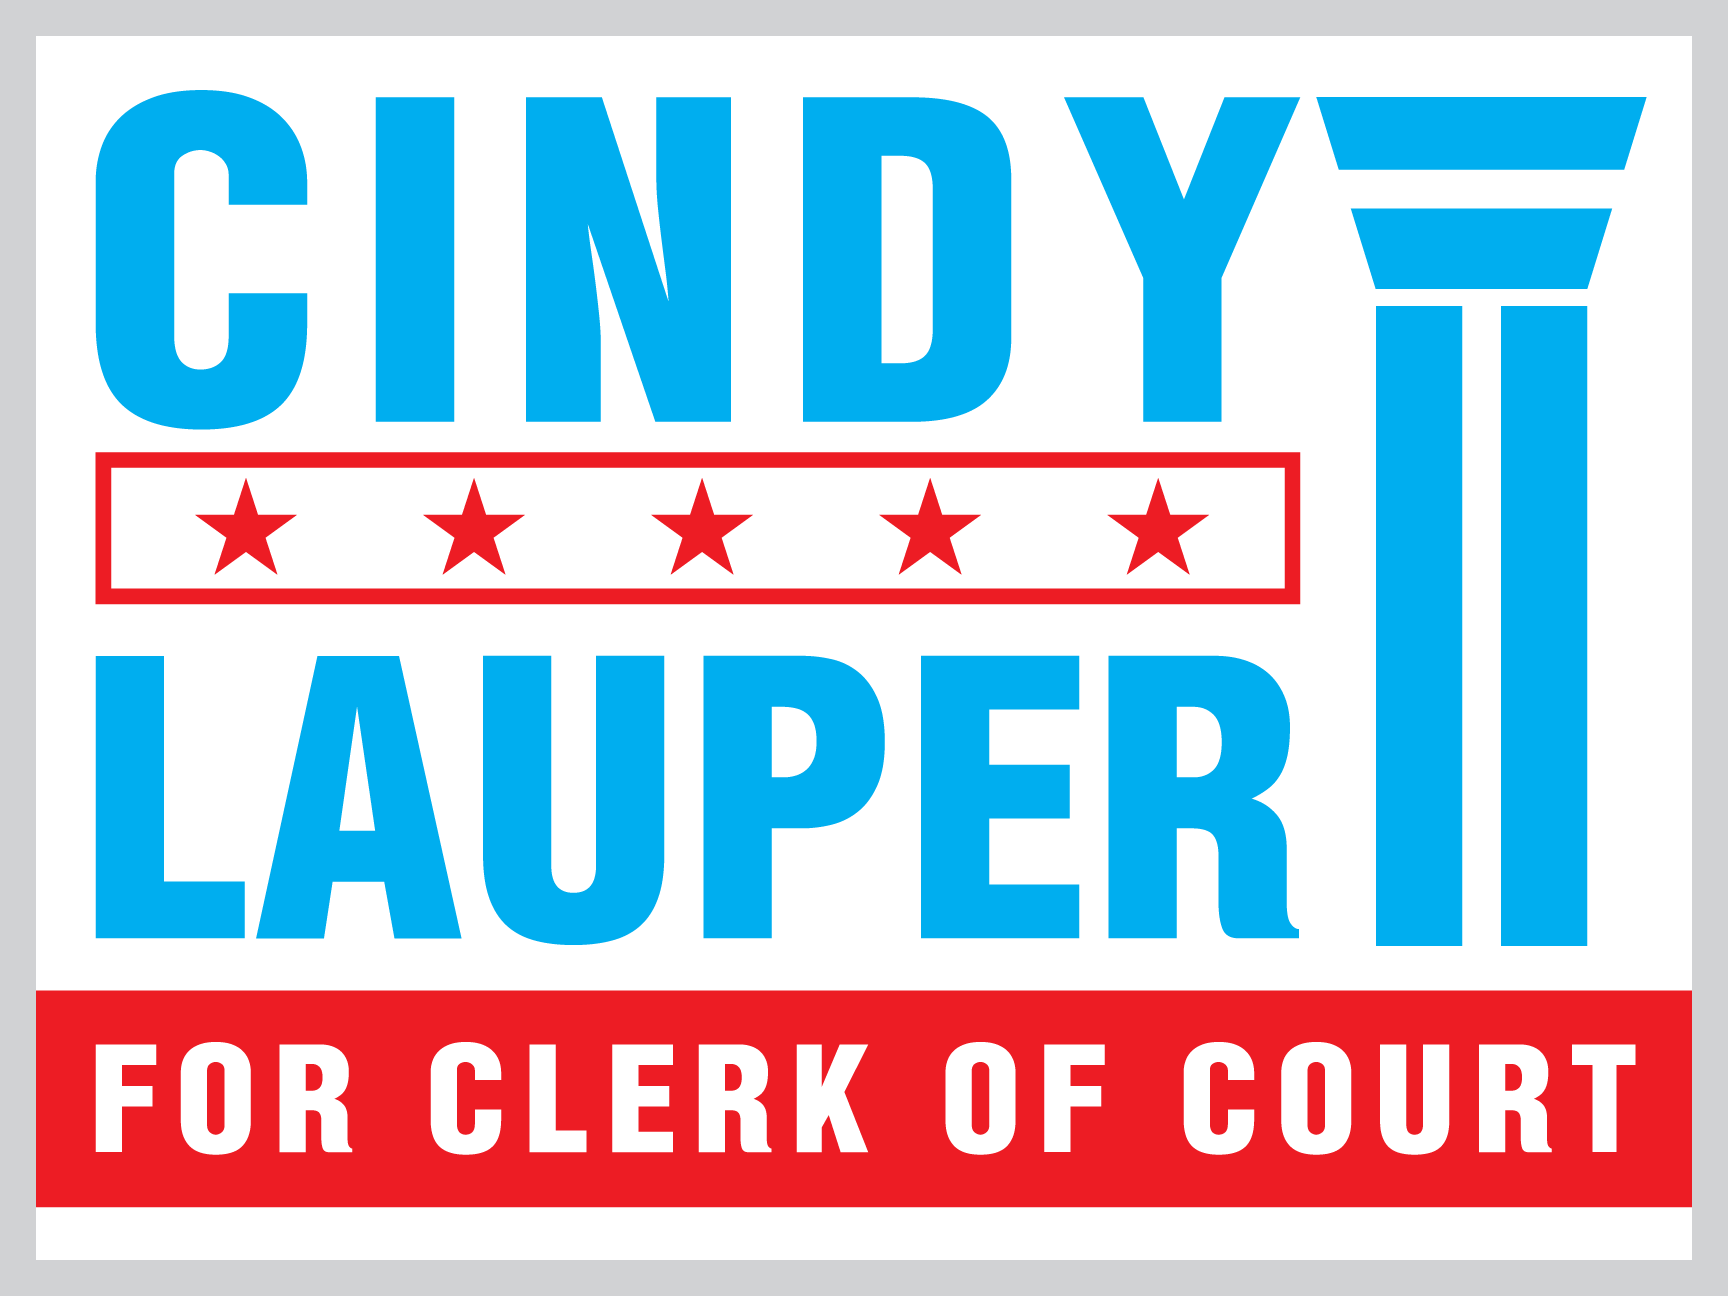 Florida Clerk Of Court Yard Sign Design